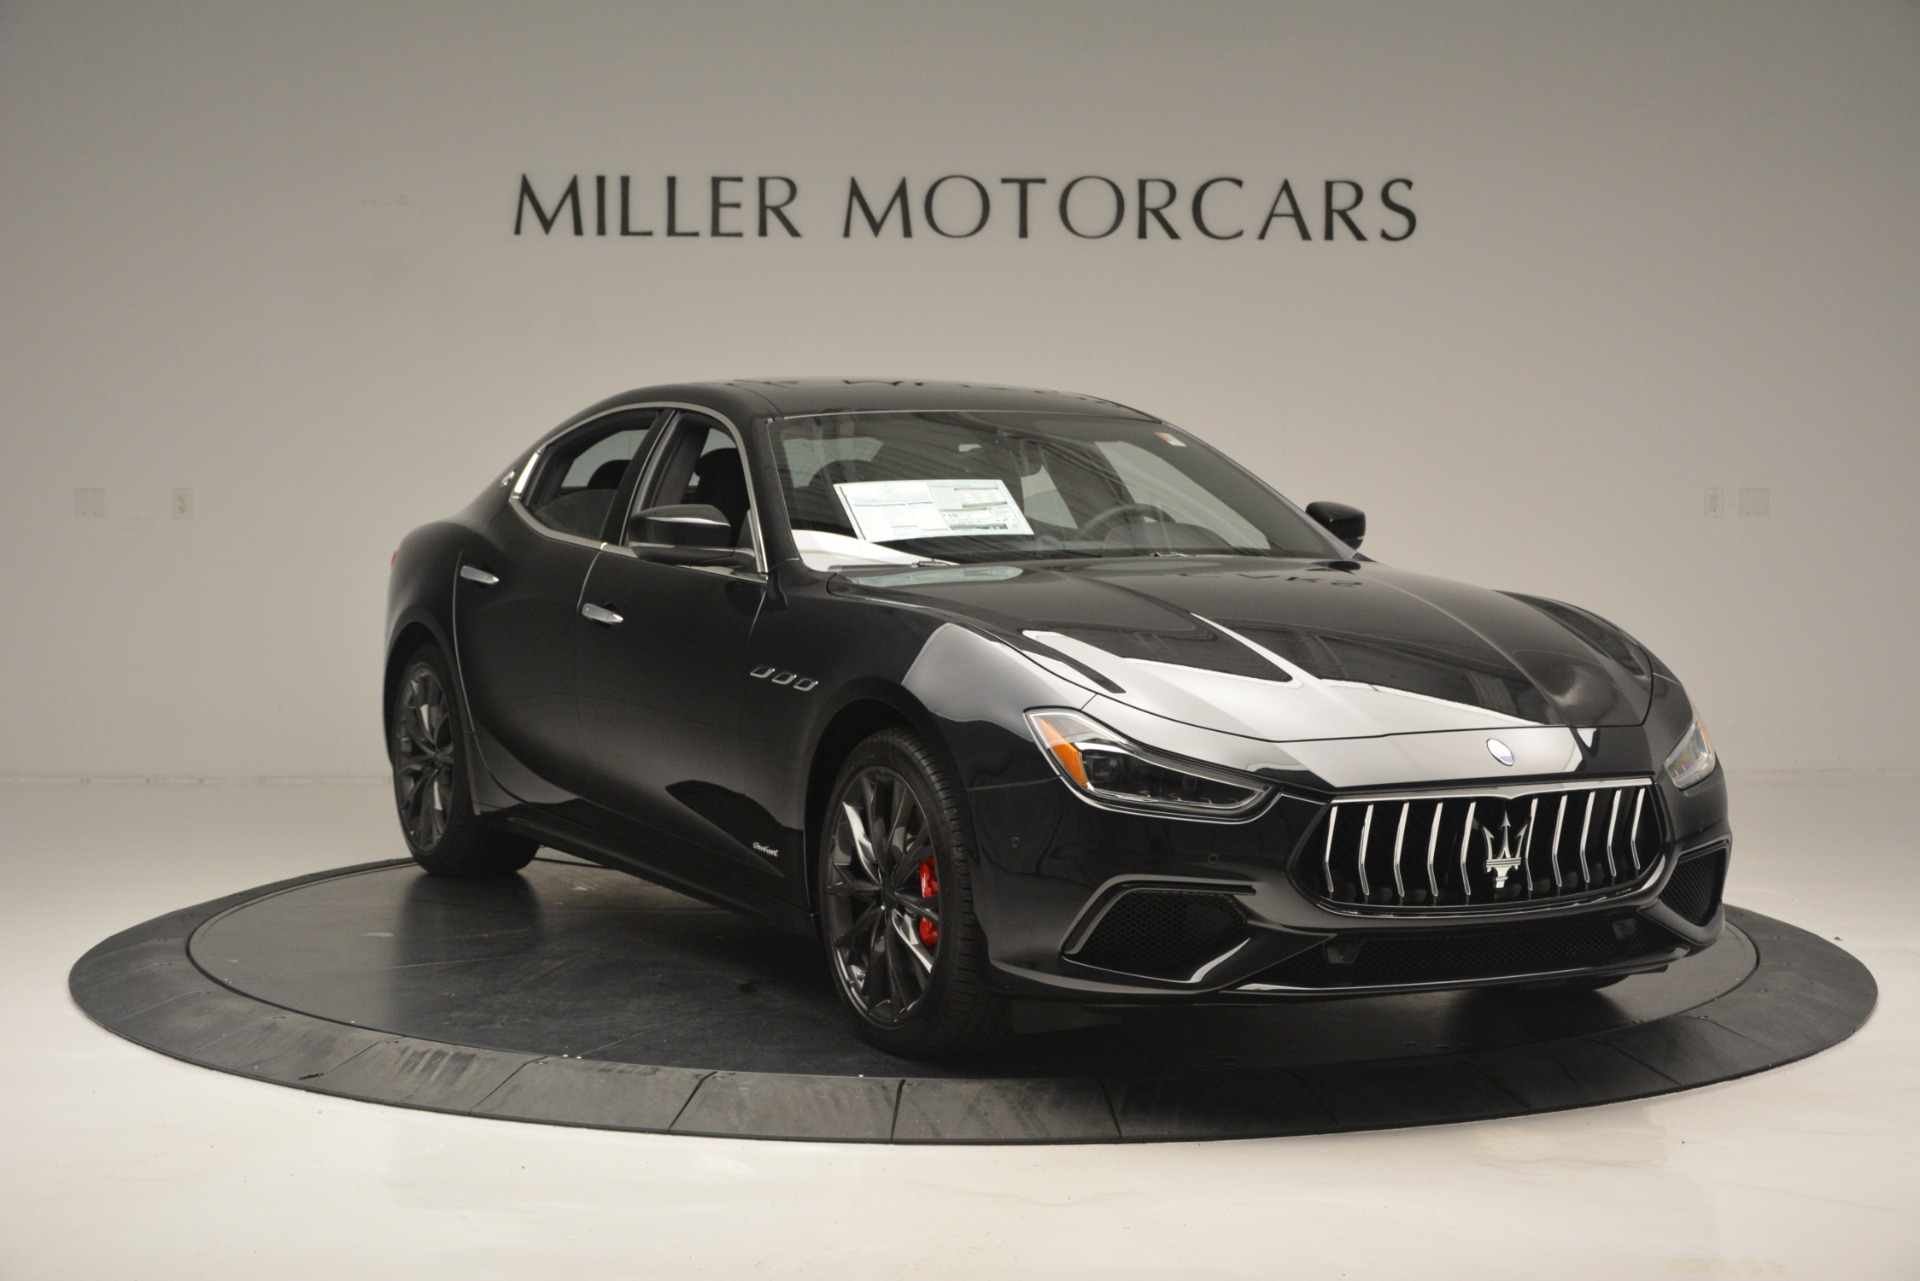 New 2019 Maserati Ghibli S Q4 GranSport For Sale In Westport, CT 2765_p11